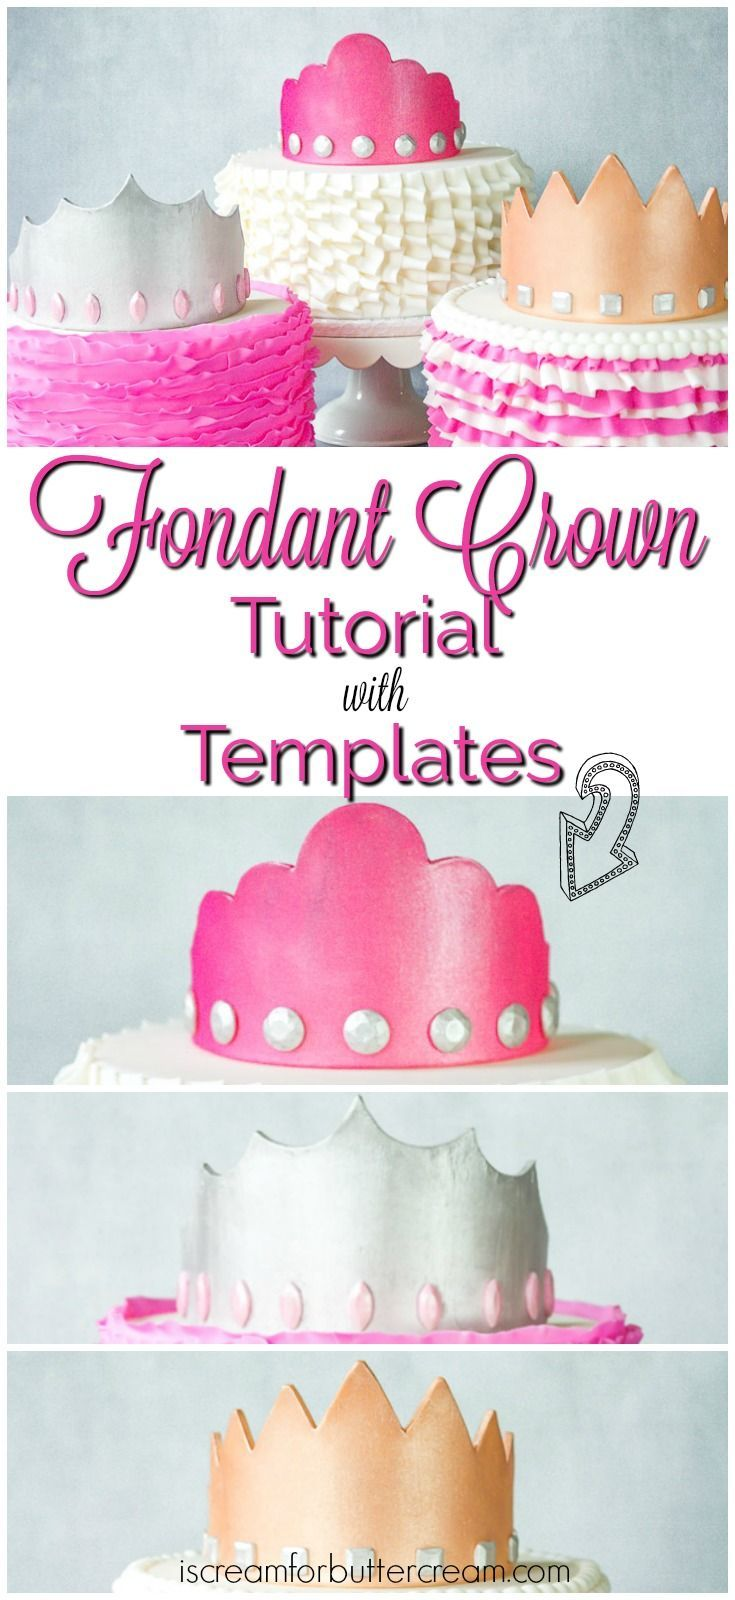 Fondant Crown Tutorial with Templates Fondant crown Crown and Cake